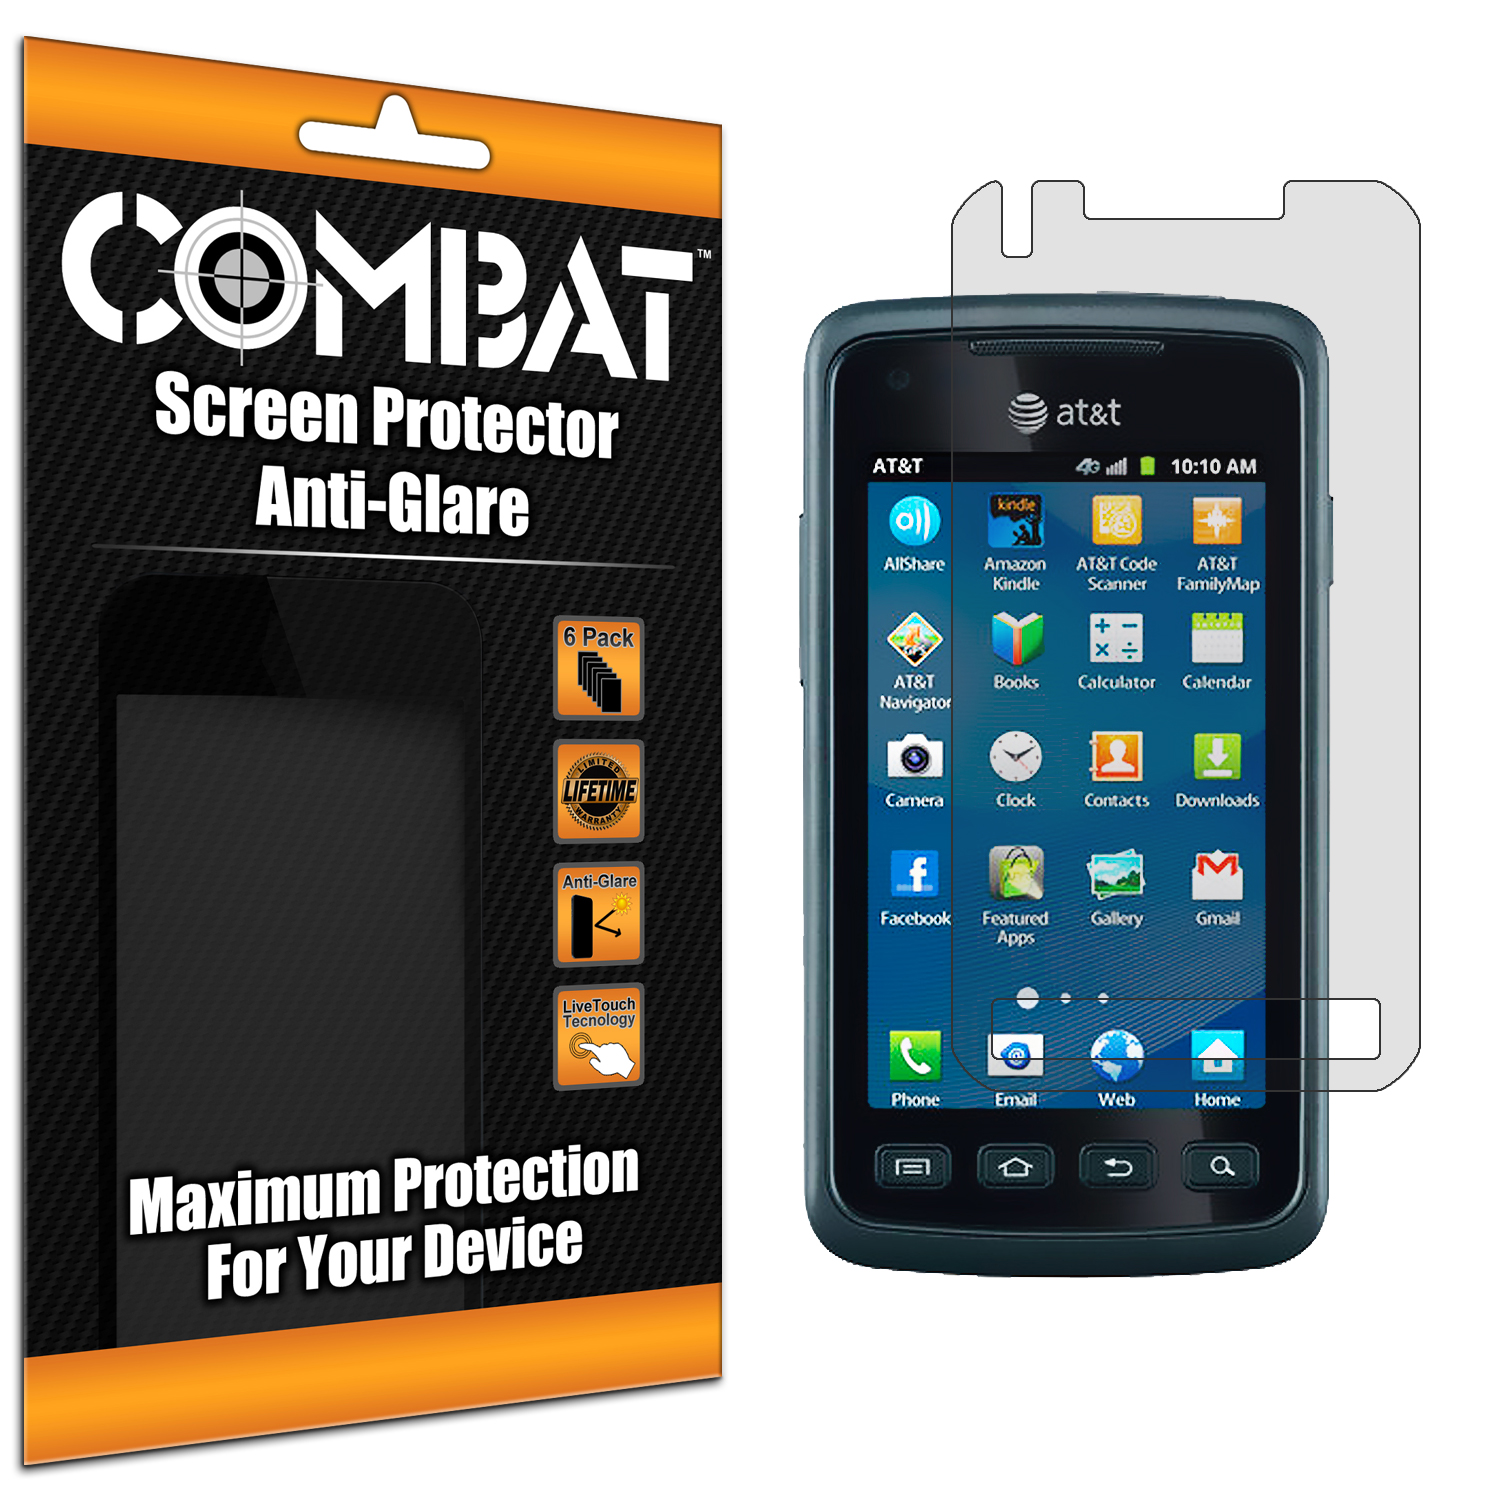 Samsung Rugby Smart i847 Combat 6 Pack Anti-Glare Matte Screen Protector